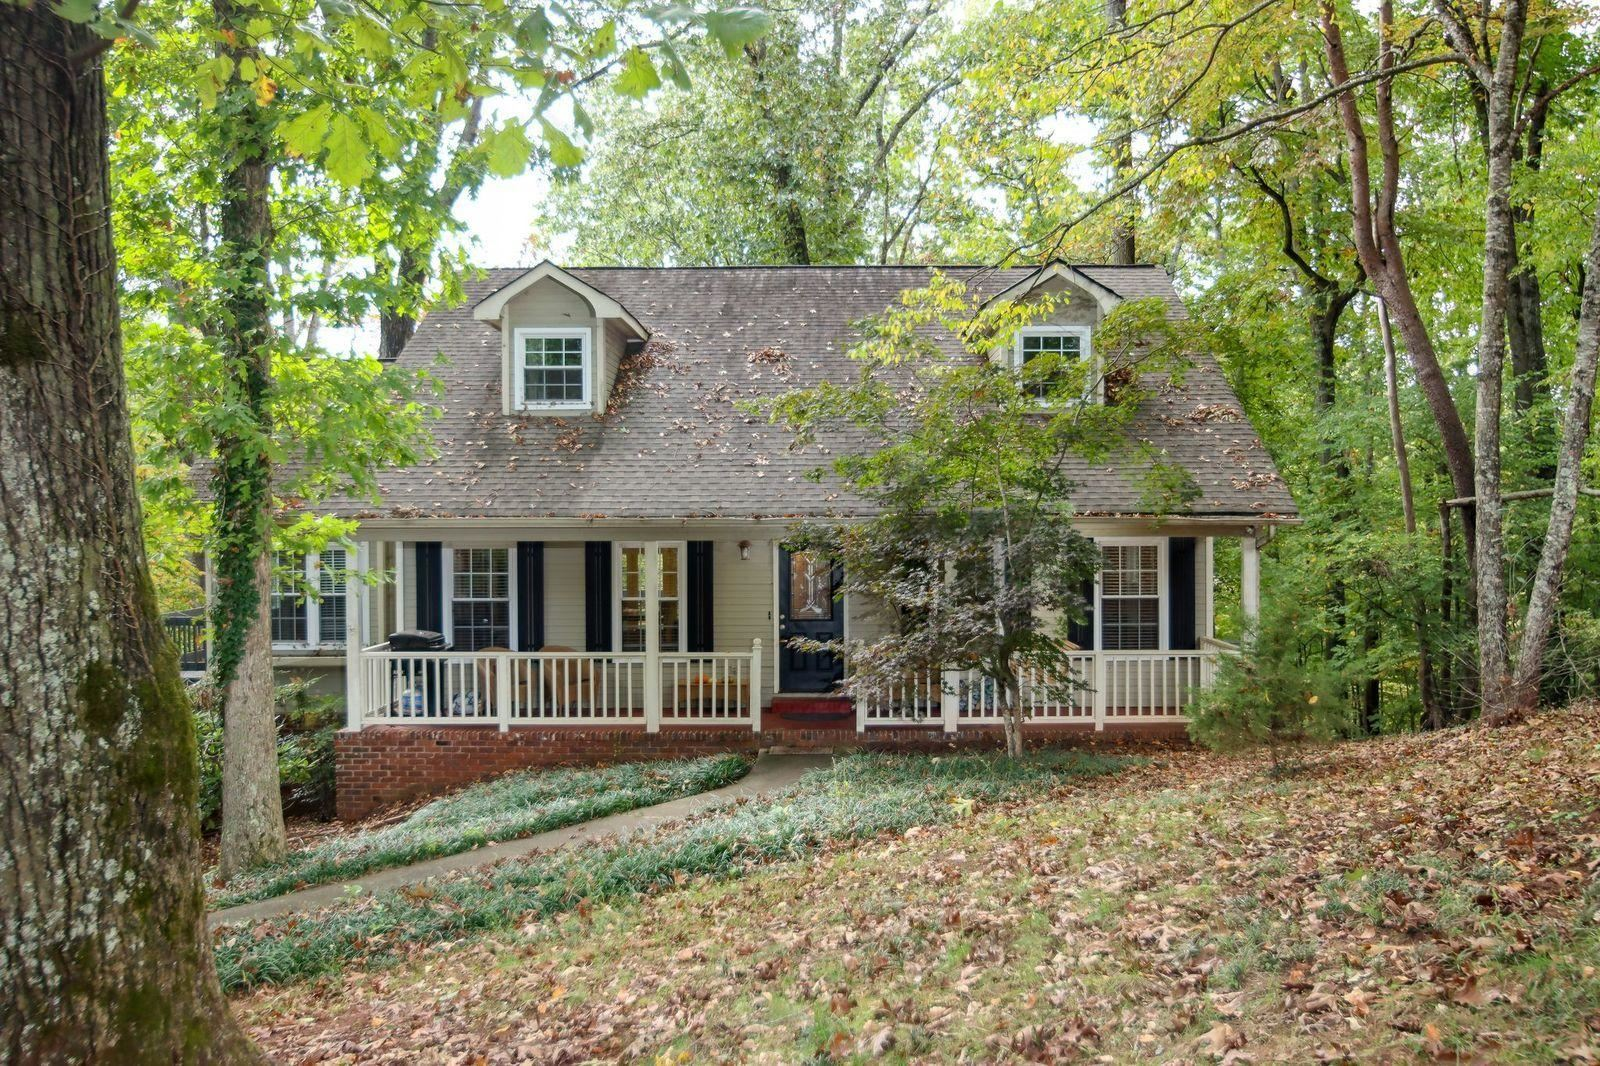 Photo of 2209 Misty Trace, Knoxville, TN 37919 (MLS # 1133357)